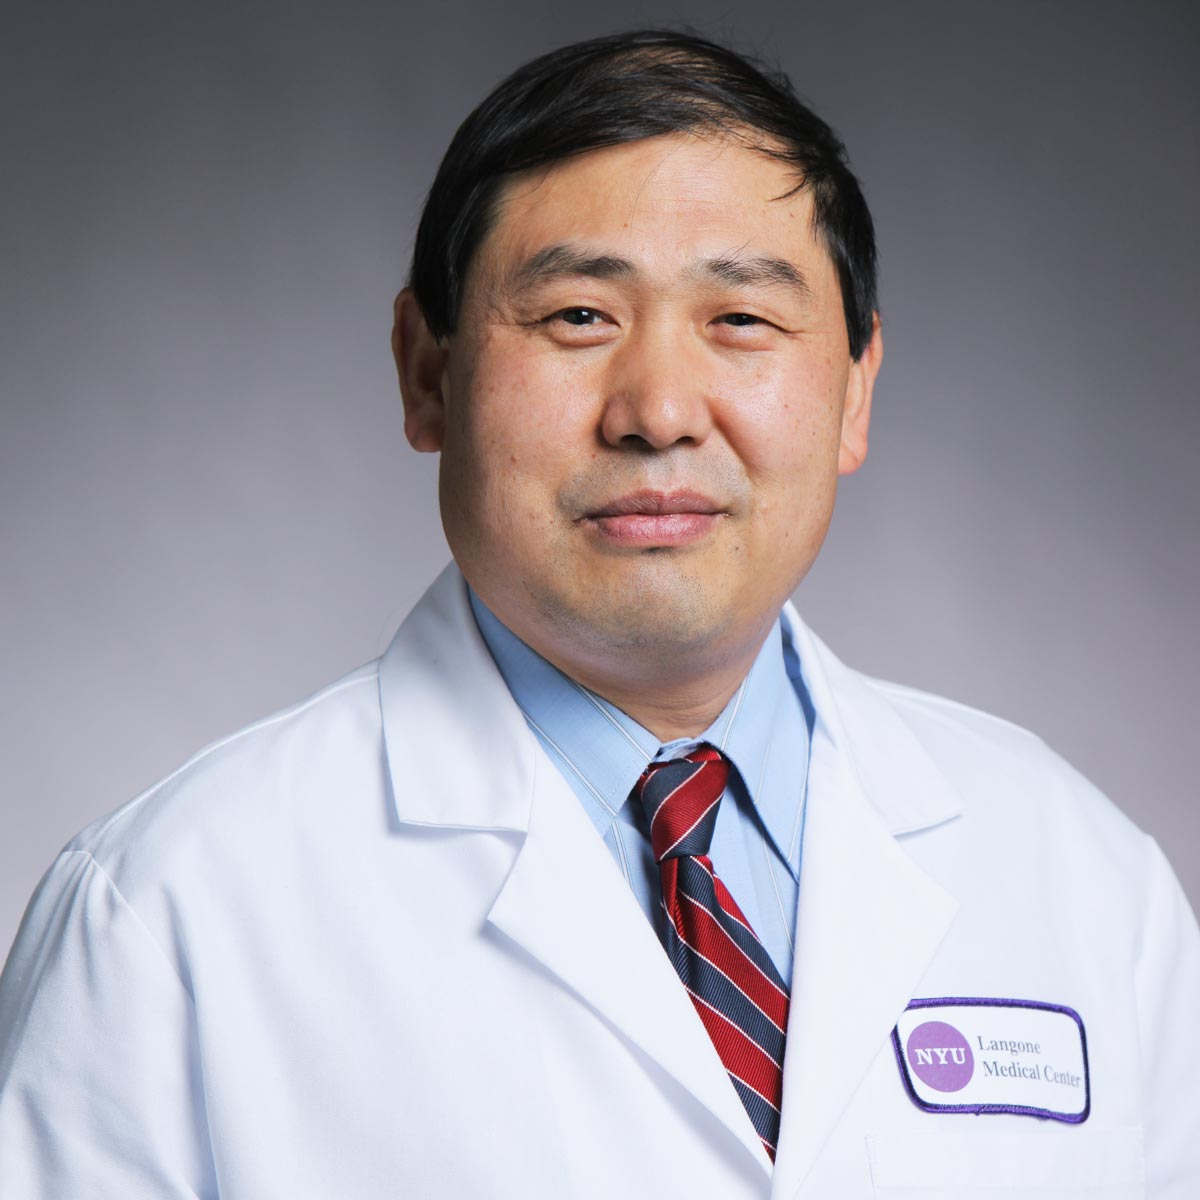 Shengping Zou at [NYU Langone Health]